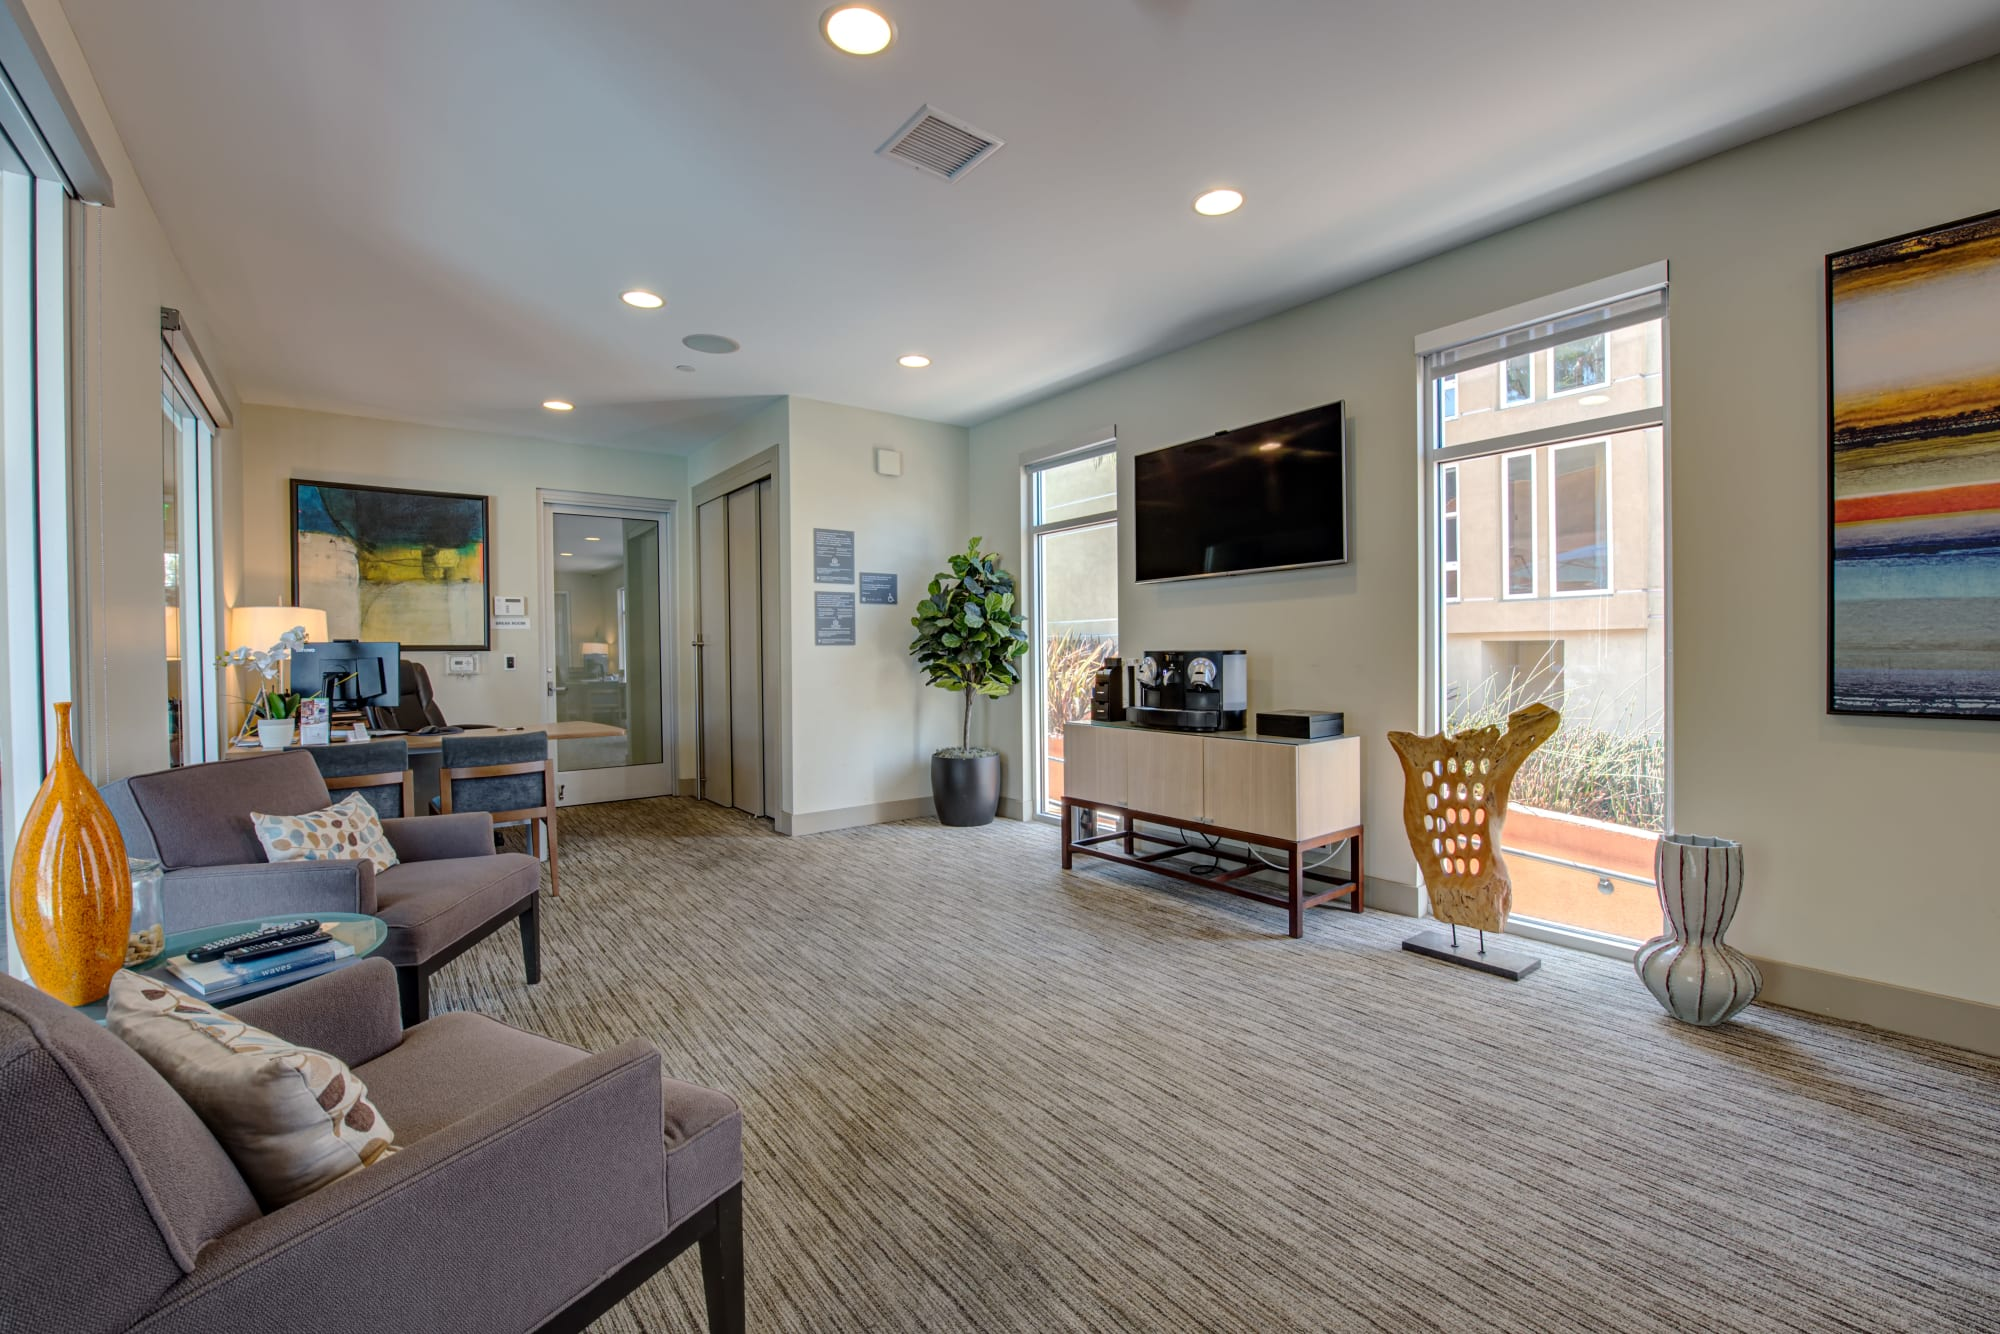 Spacious community clubhouse at Harborside Marina Bay Apartments in Marina del Rey, California